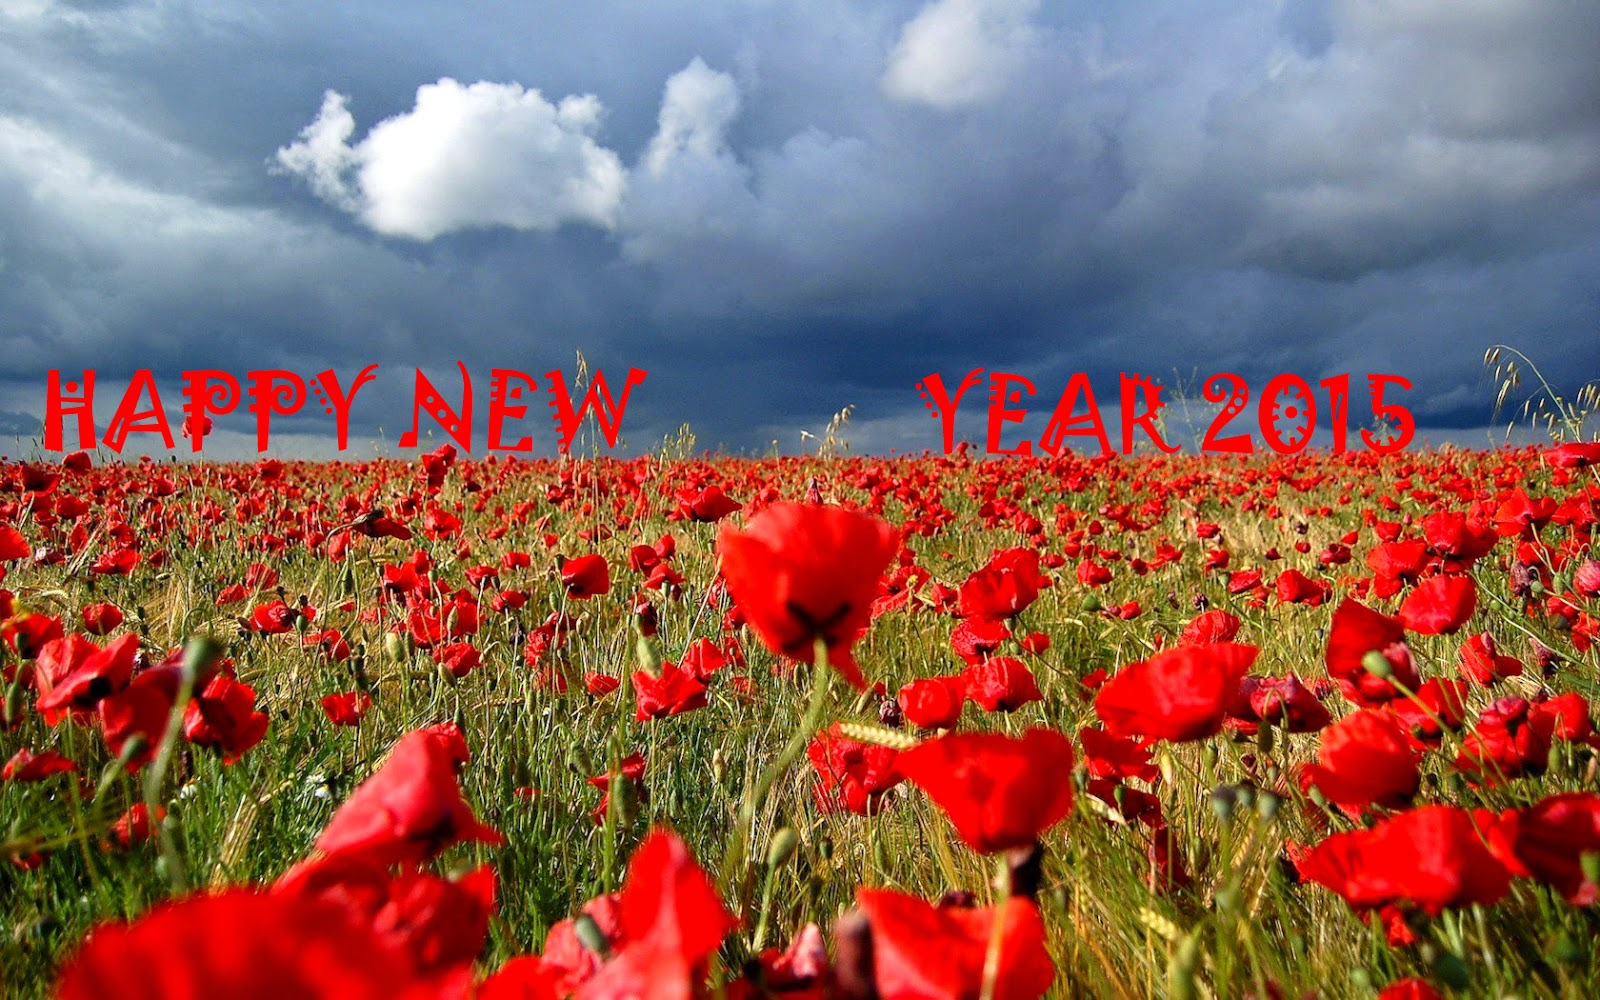 Happy New Year 2015 Pictures Cards Free Download